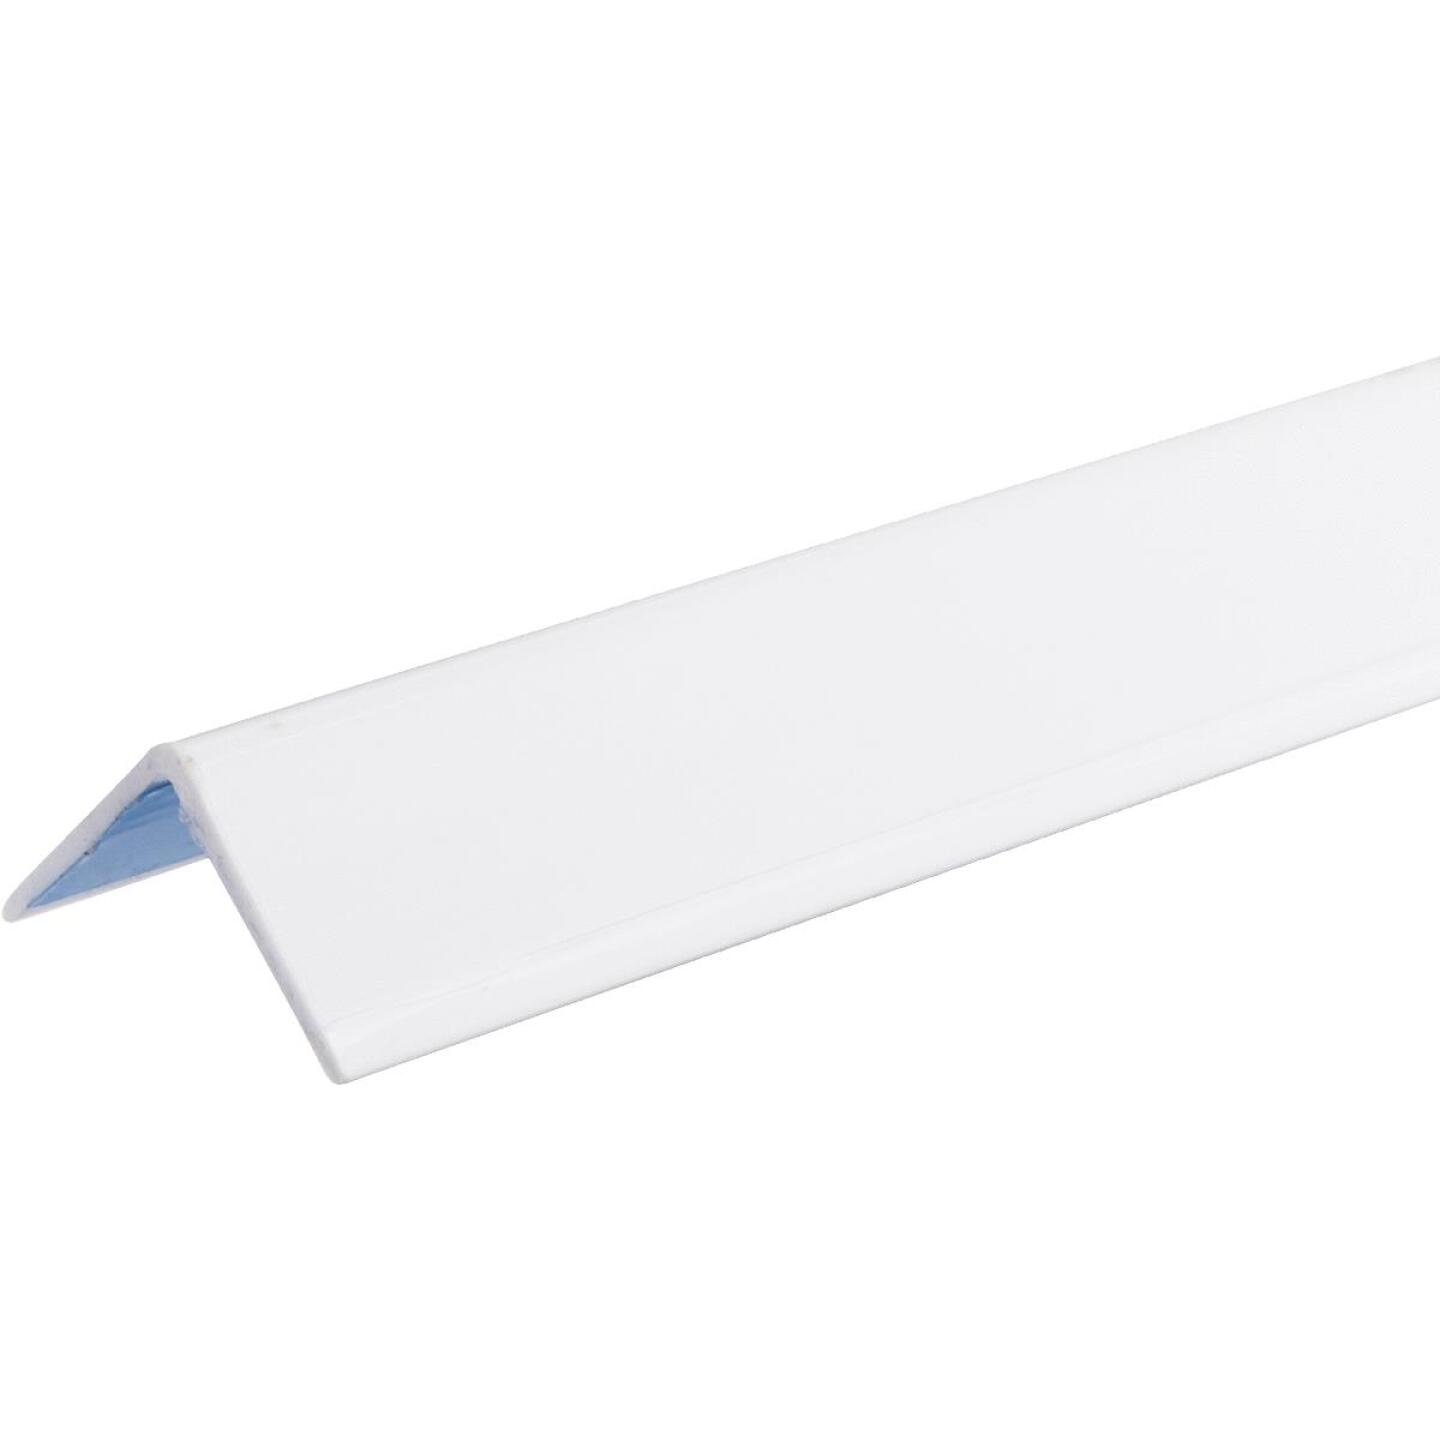 Wallprotex 1-1/8 In. x 4 Ft. White Self-Adhesive Corner Guard Image 1